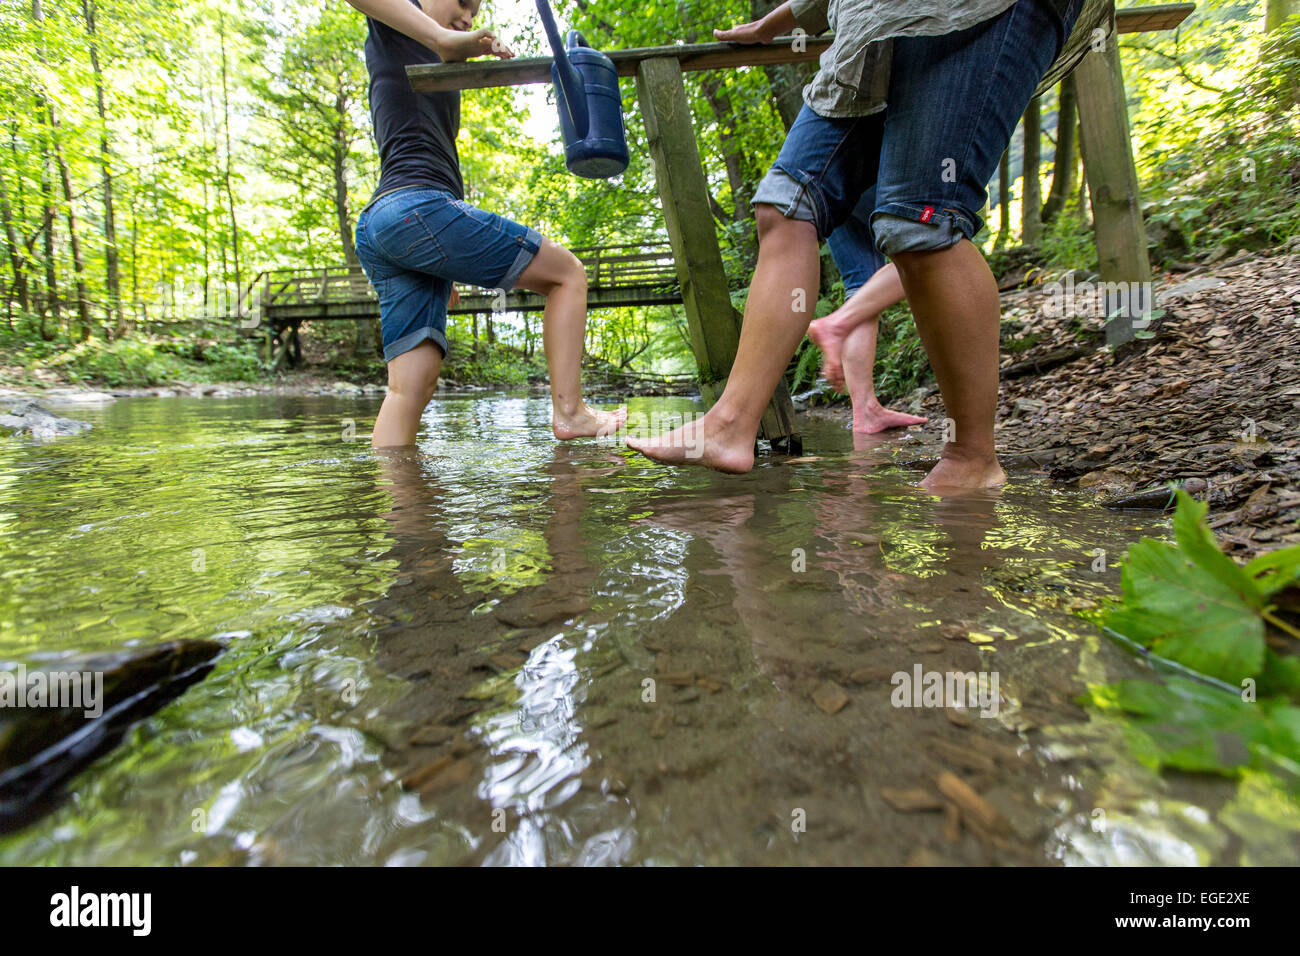 Kneipp cure, hydrotherapy in river Ruhr, a theme hiking path in the Sauerland region, Germany, - Stock Image